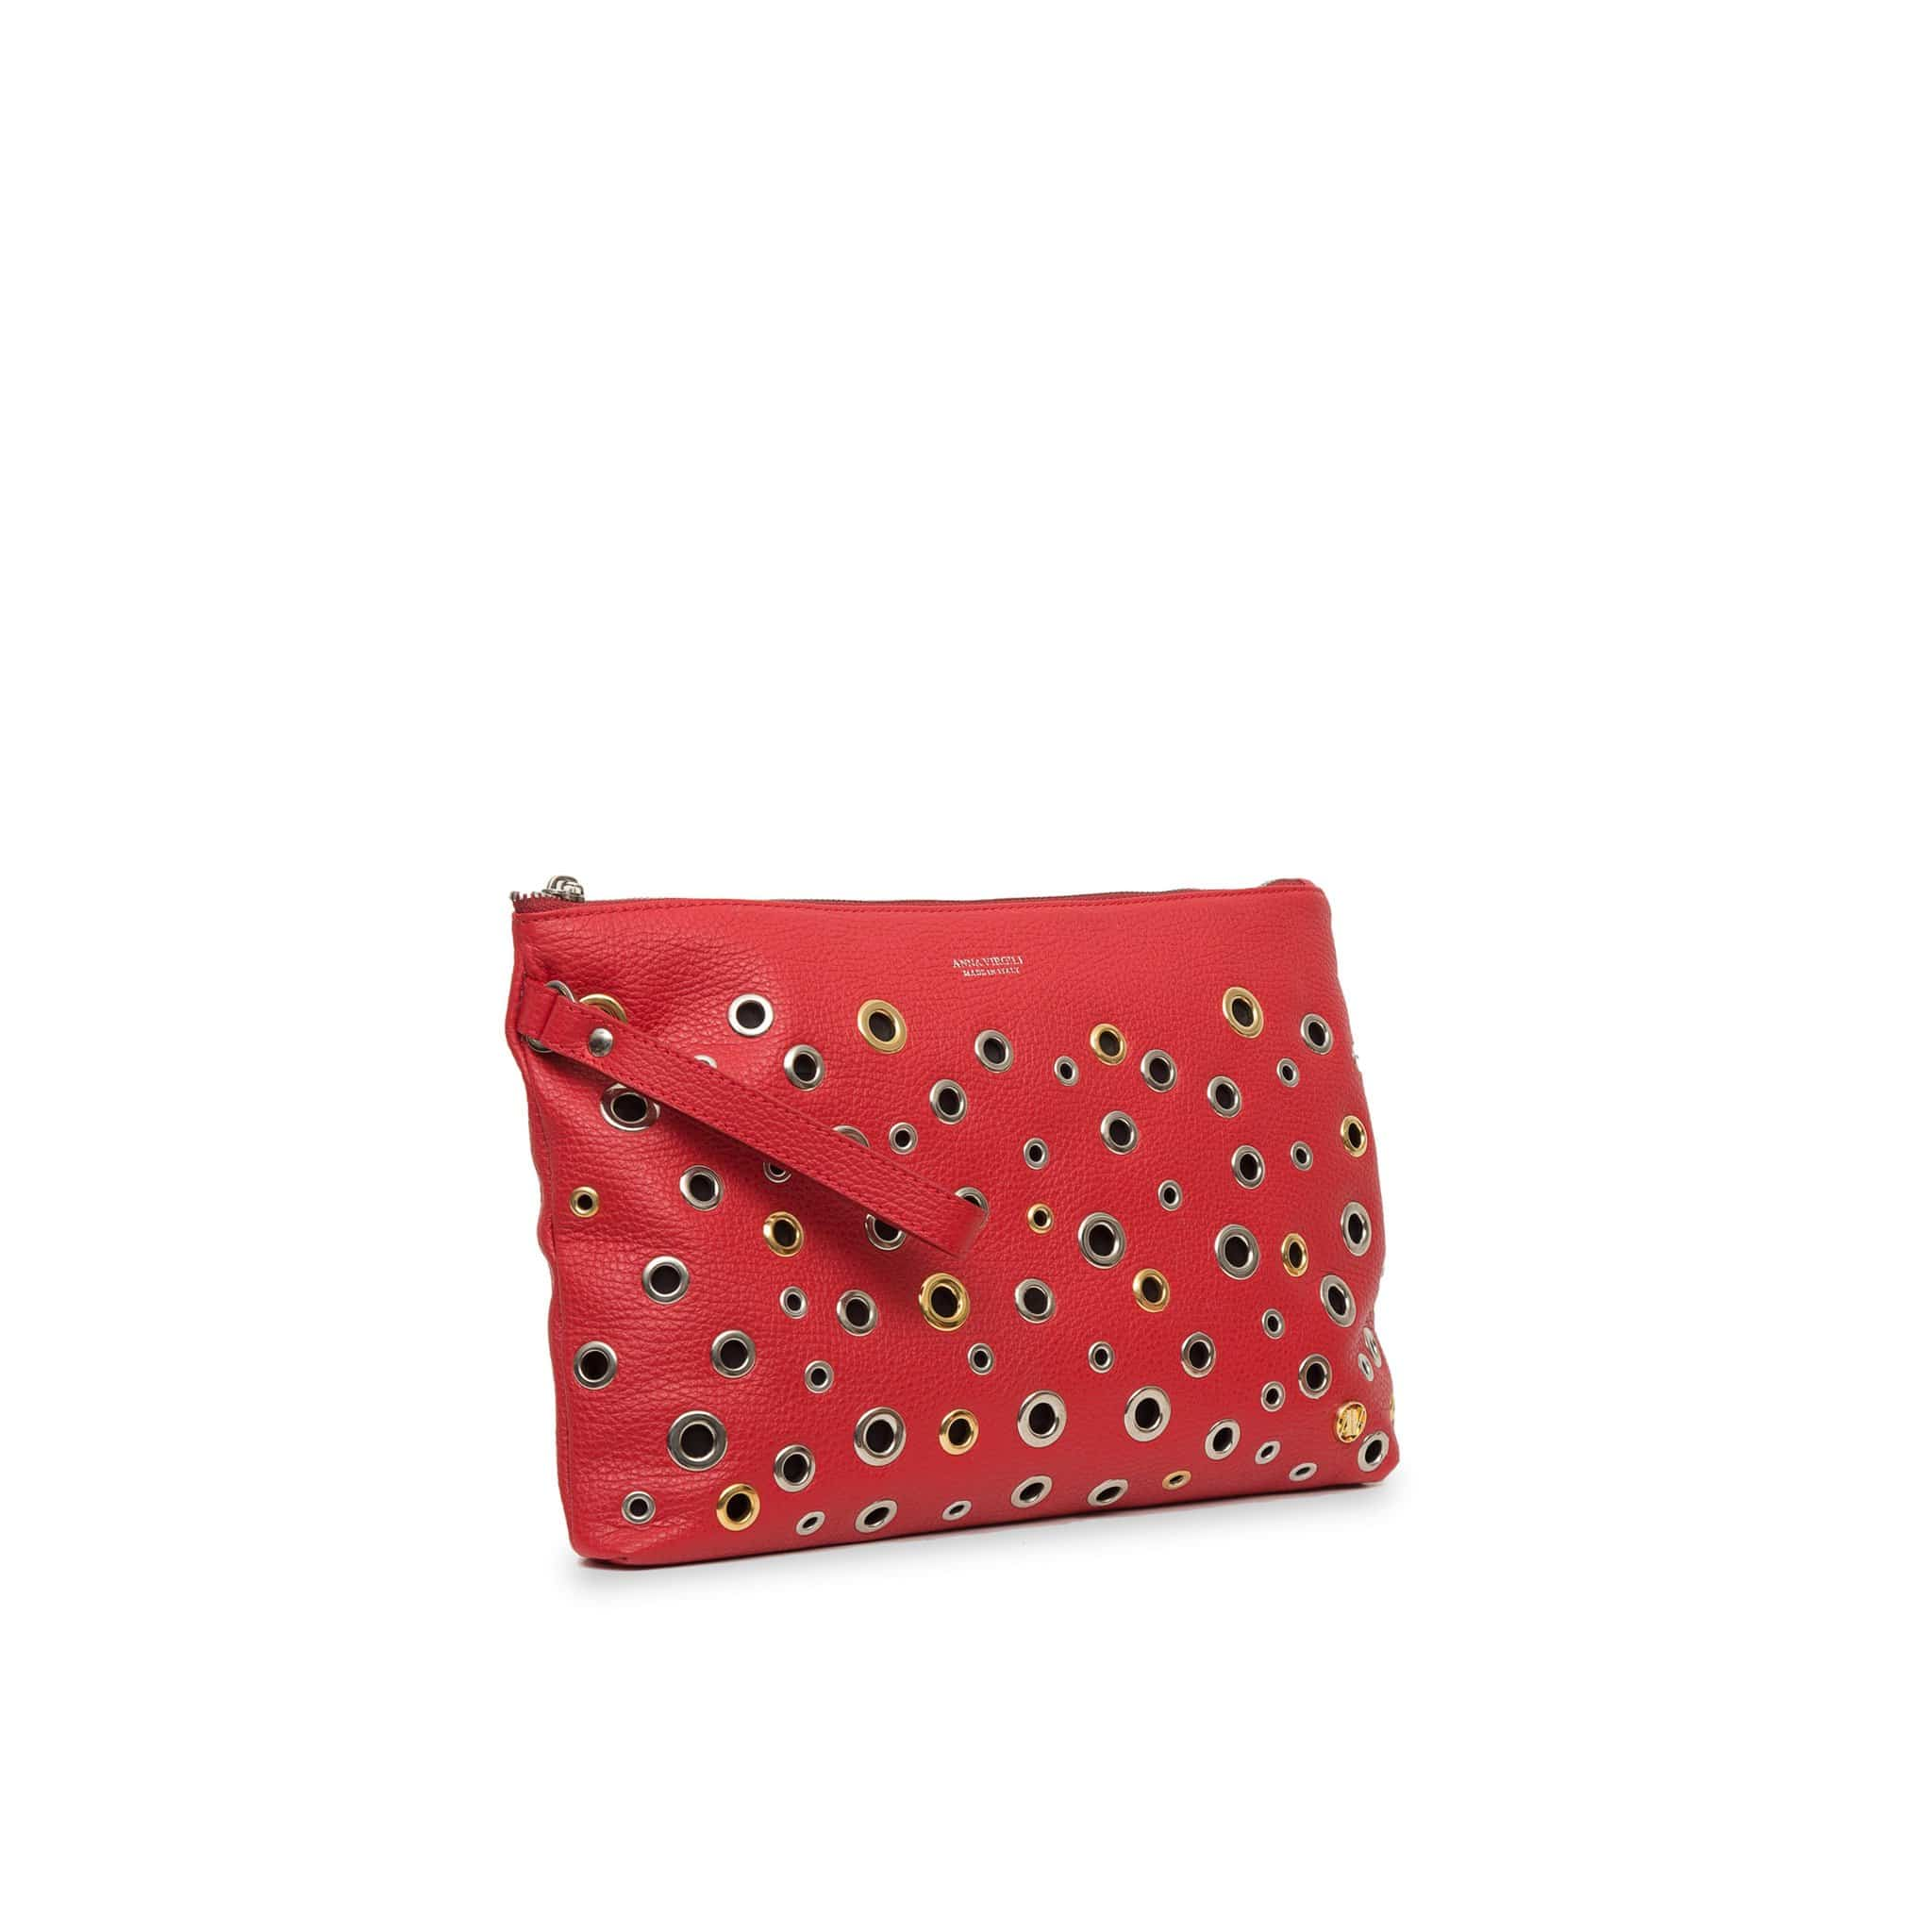 Dany Leather Rock Clutch - Red